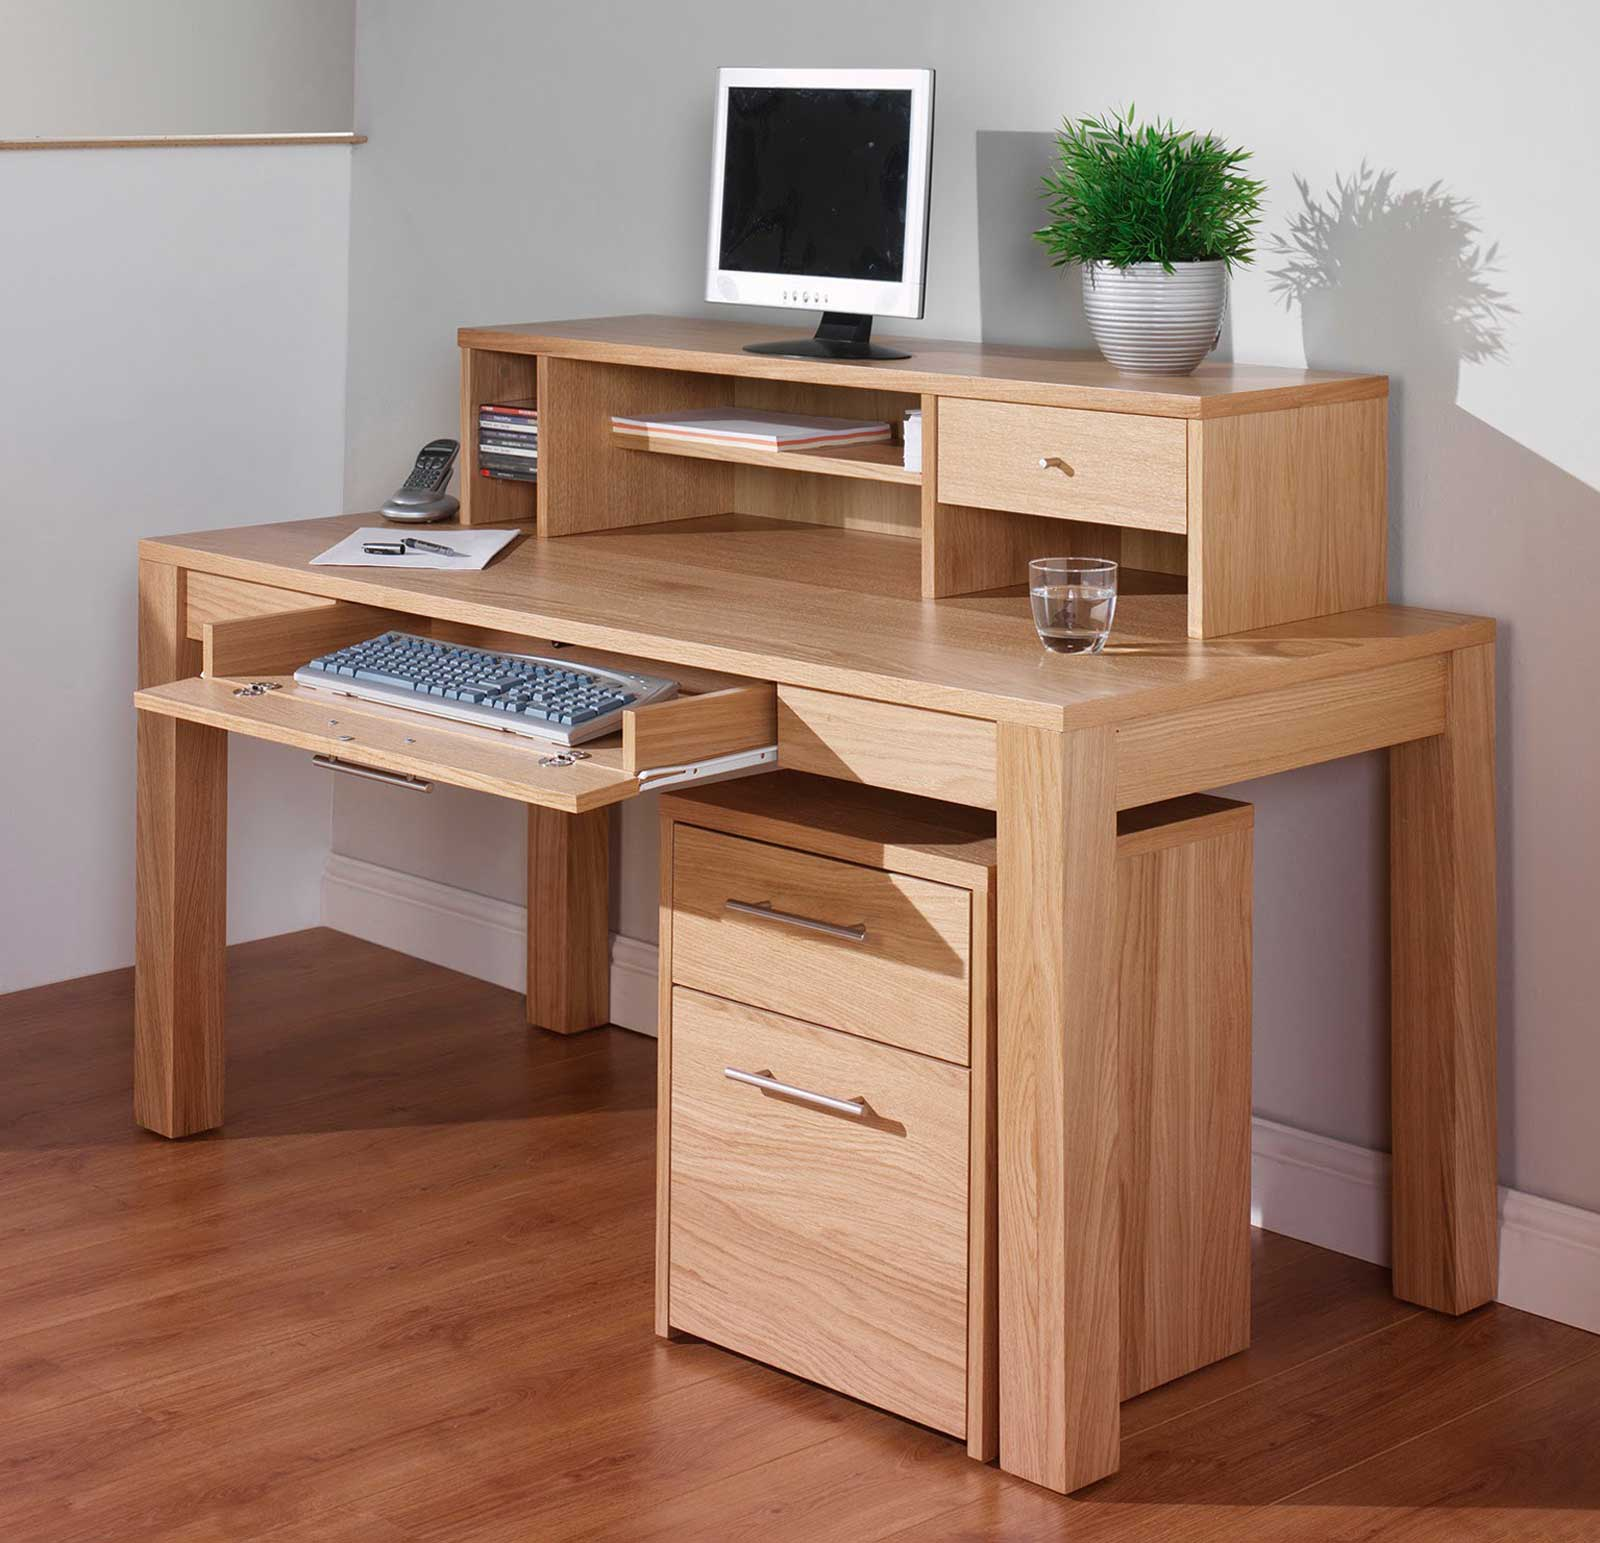 Office Desk Design Ideas desk design ideas goodly desks pictures of gorgeous desk designs furniture ideas desk designs Desk